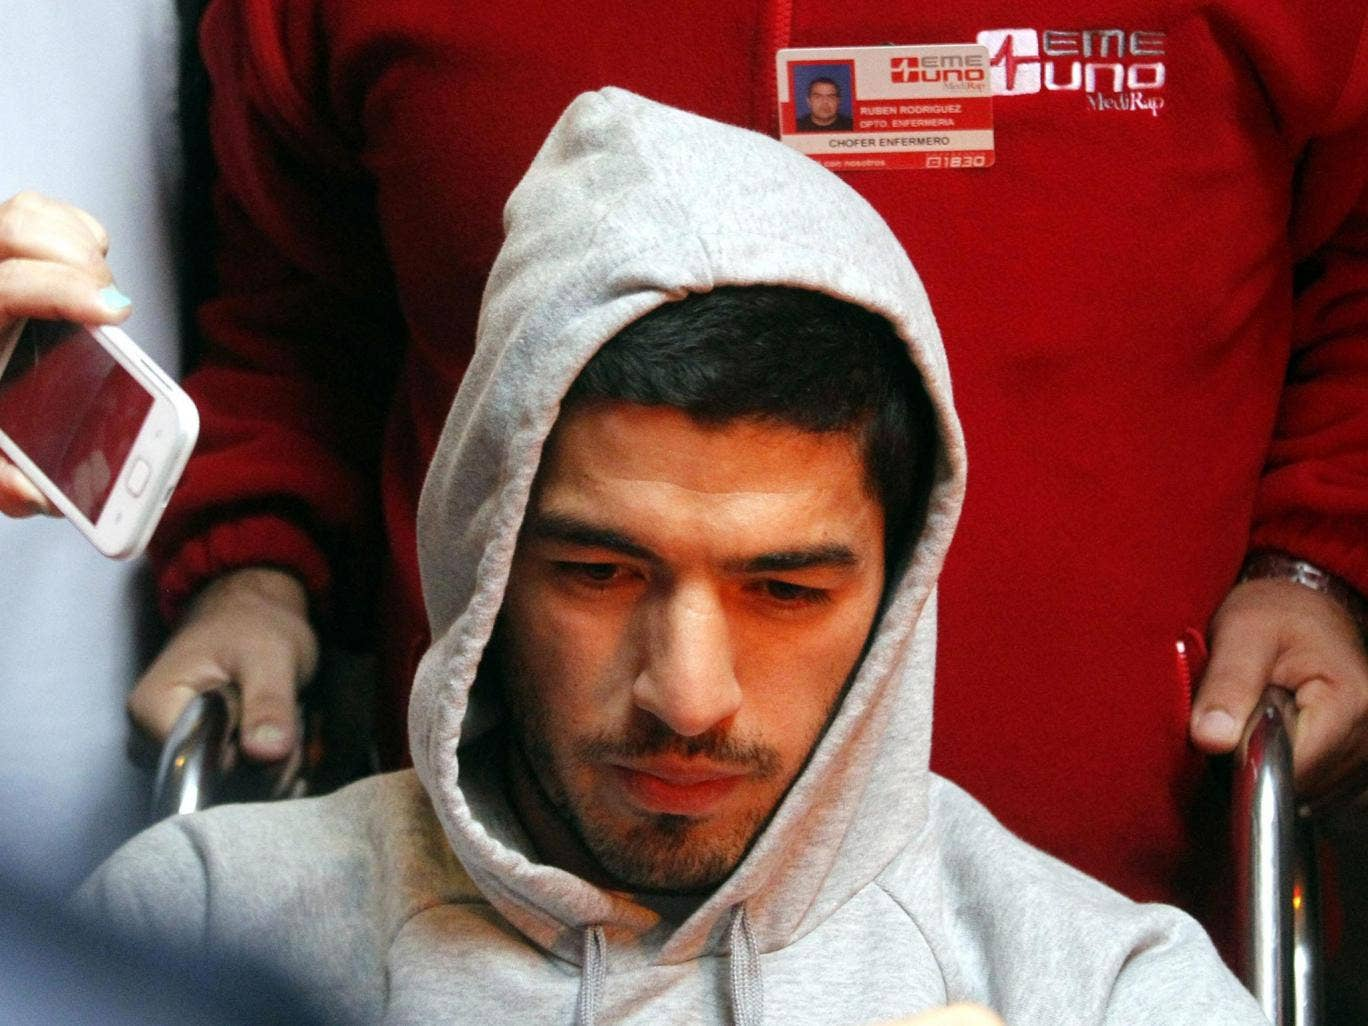 Luis Suarez is moved from Medica Uruguaya hospital after his operation, in Montevideo, Uruguay